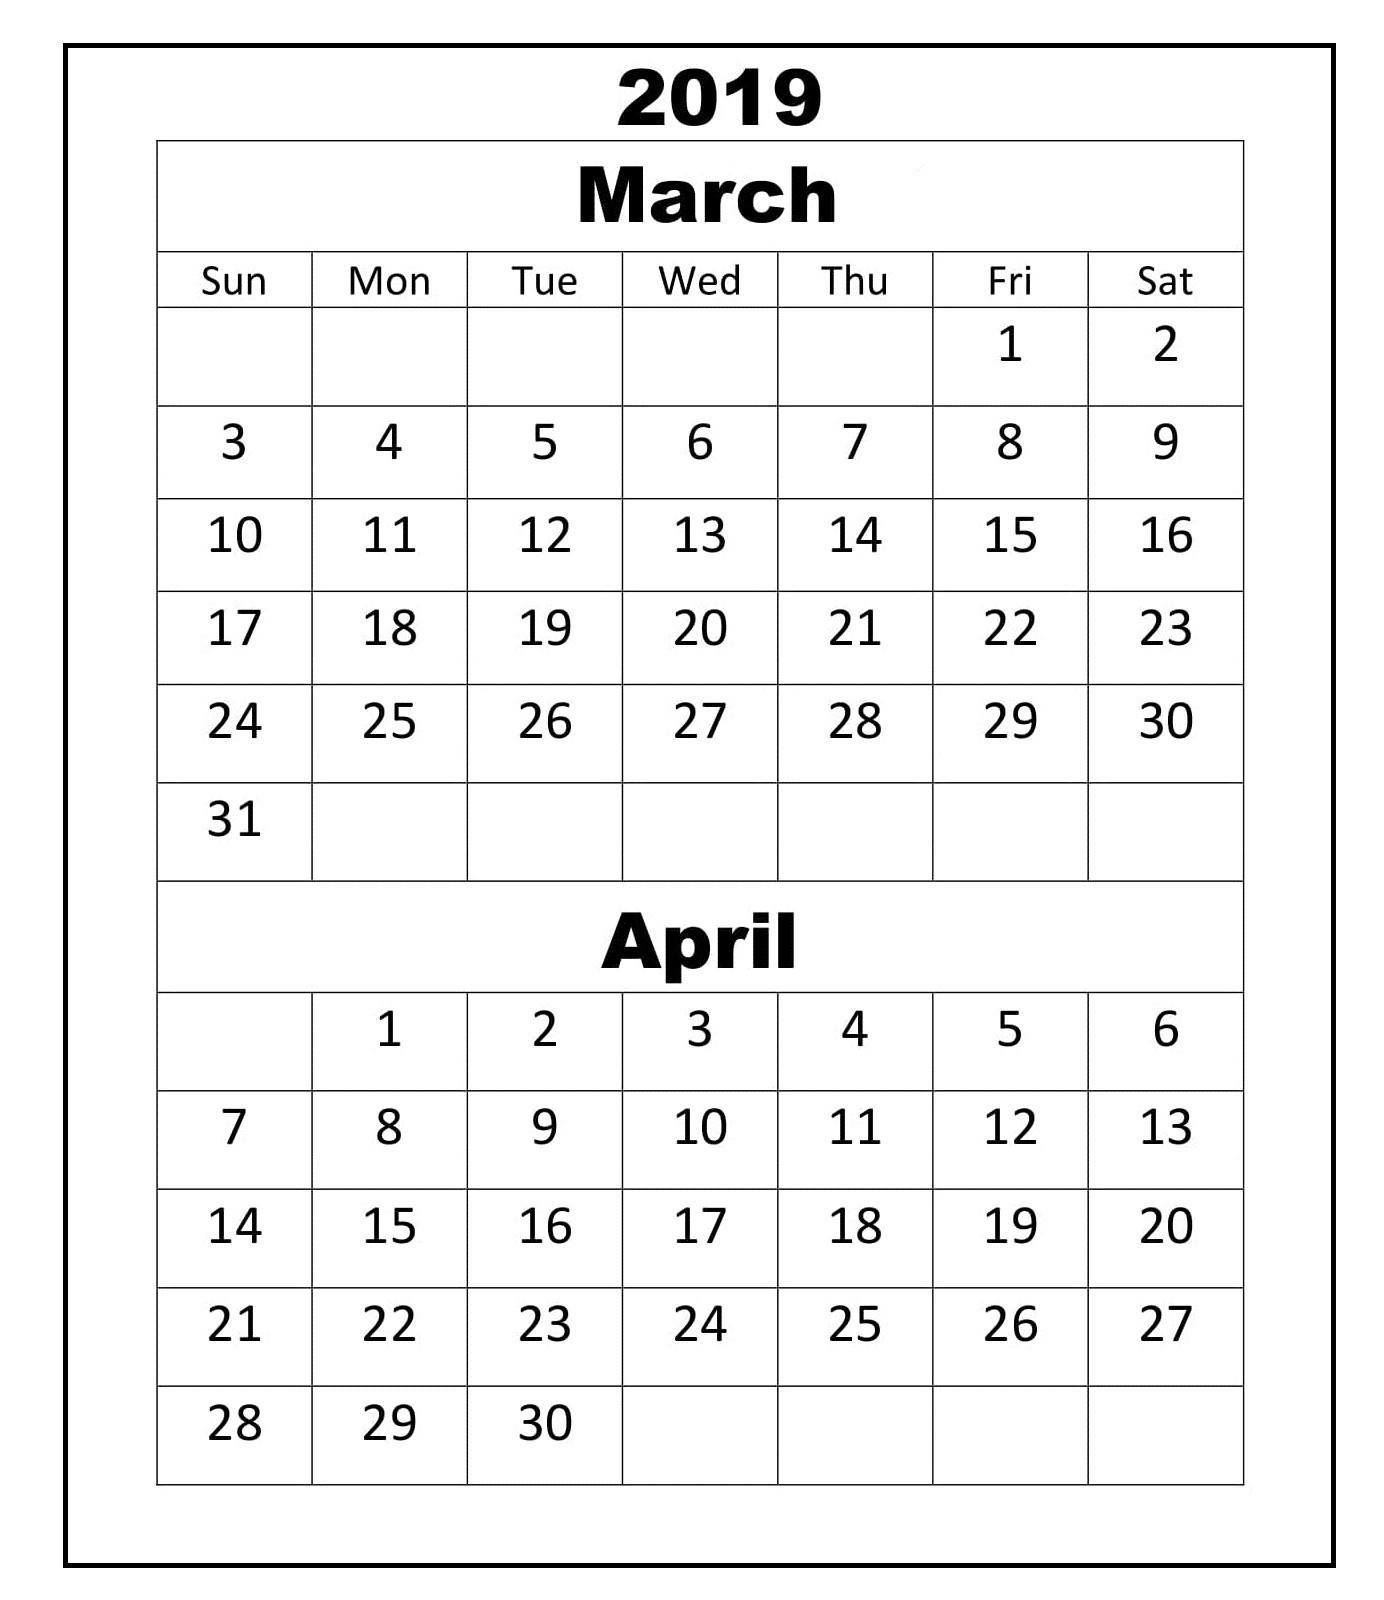 March Calendar 2019 Actual March April 2019 Calendar Printable Printables Calendars 2019 and Of March Calendar 2019 Más Actual Odia Calendar 2019 with March Odishain